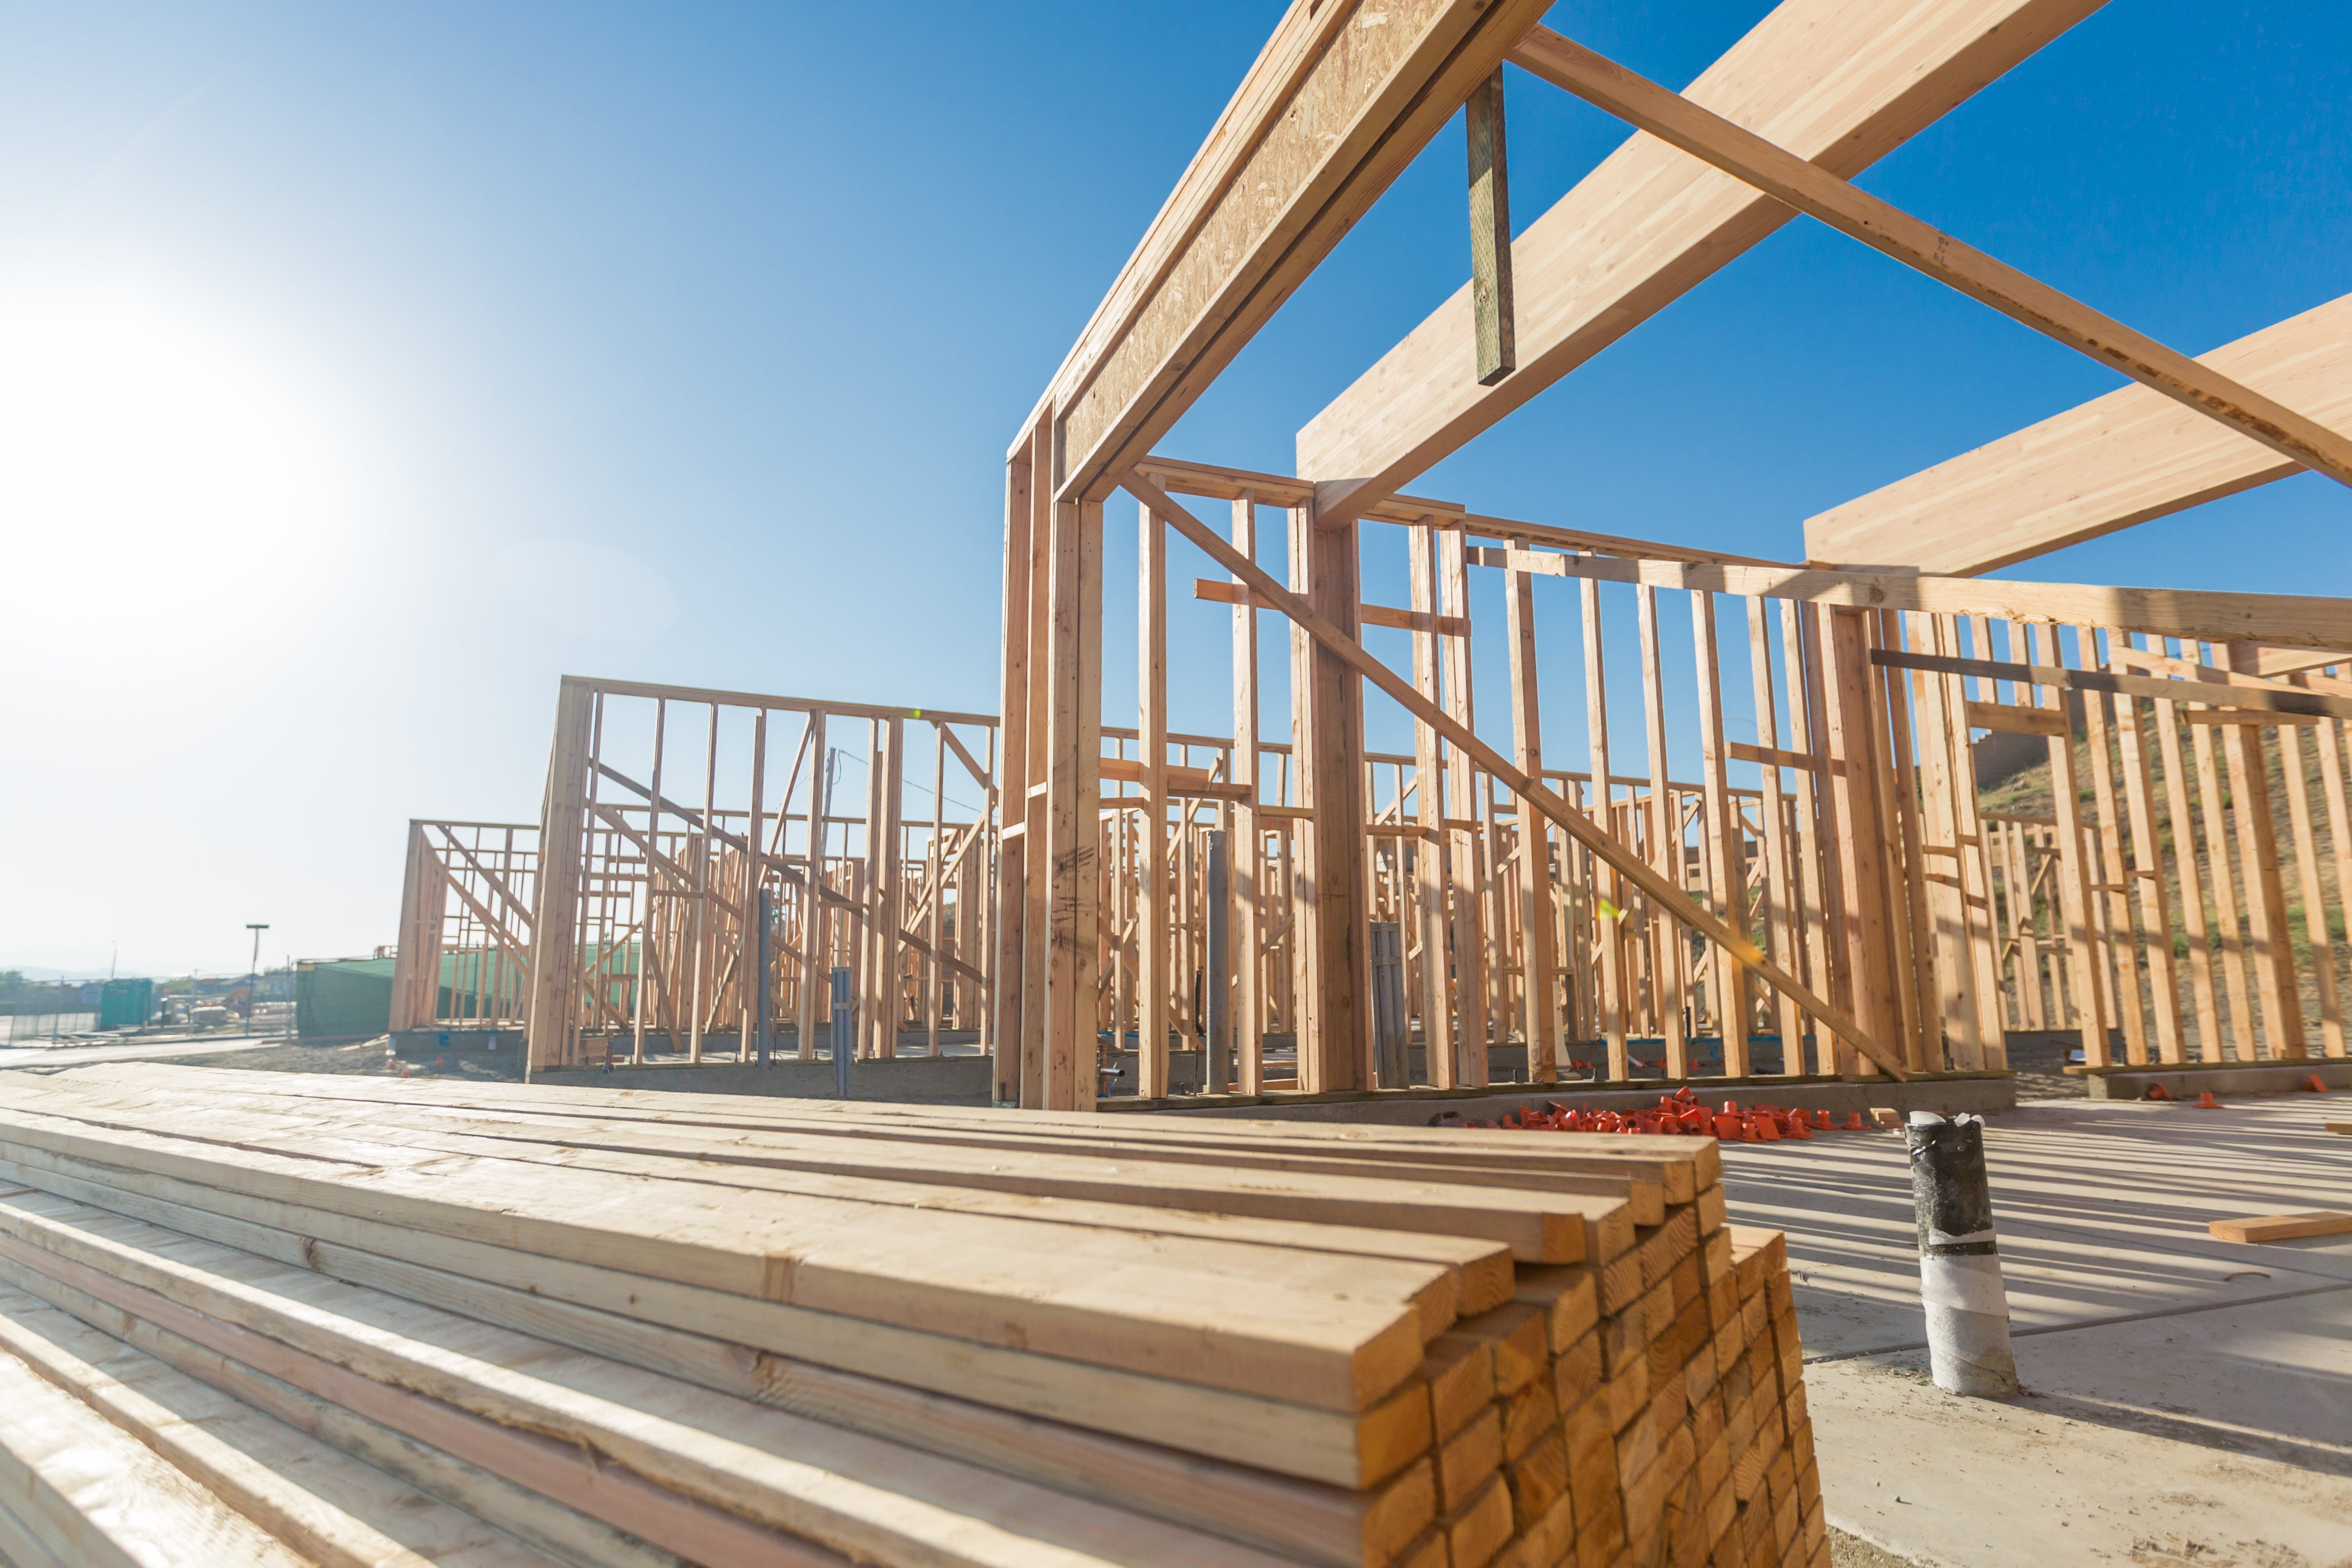 An adequate supply of affordable housing promotes homeownership.